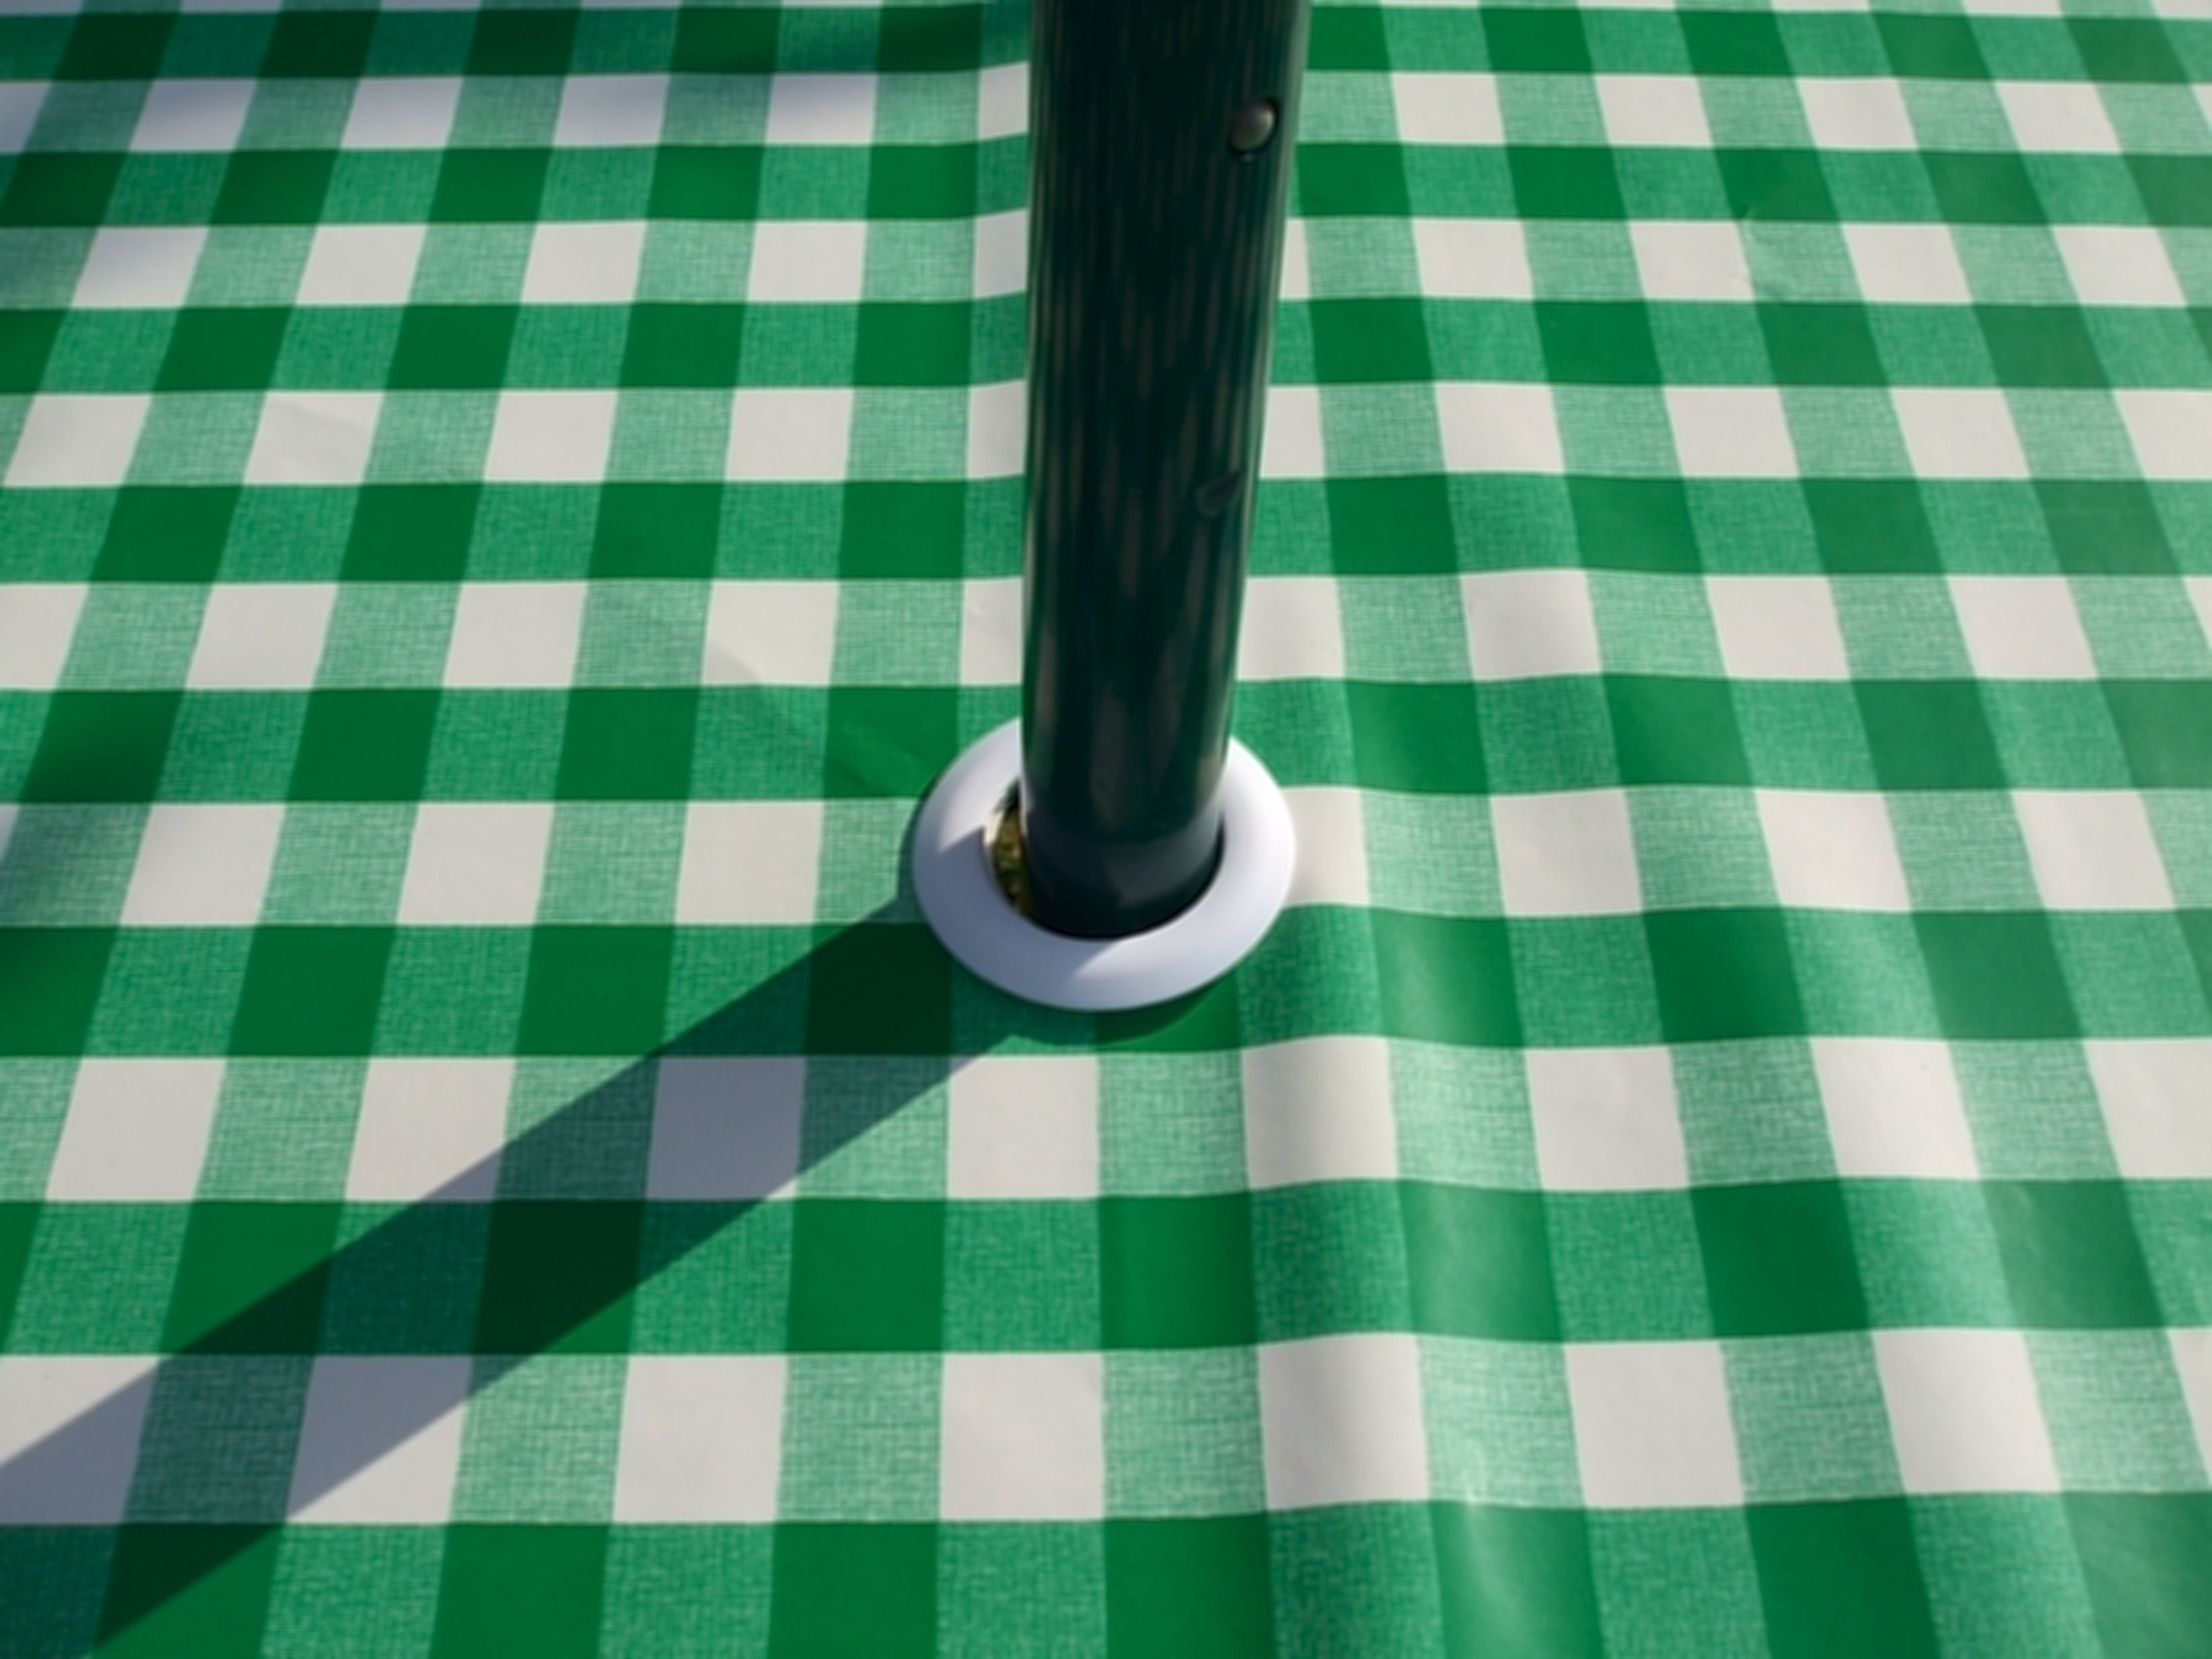 Square Wipe Clean Tablecloth With Parasol Hole Green